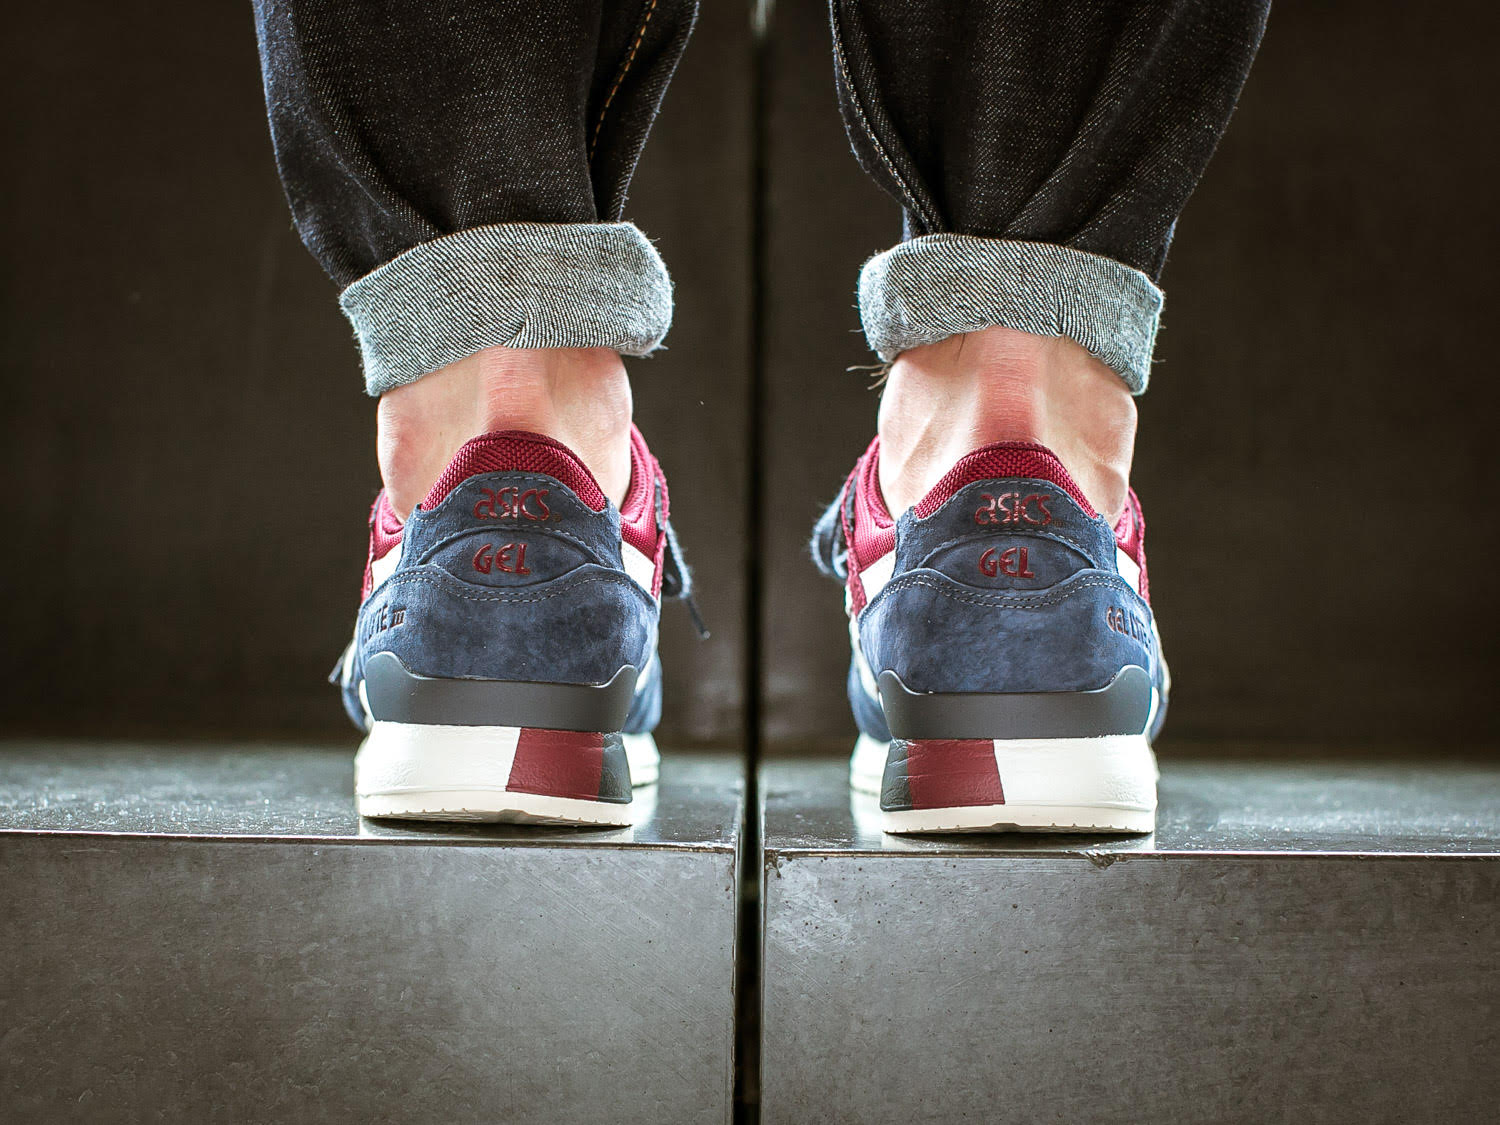 Asics Gel-Lyte III India Ink Heel